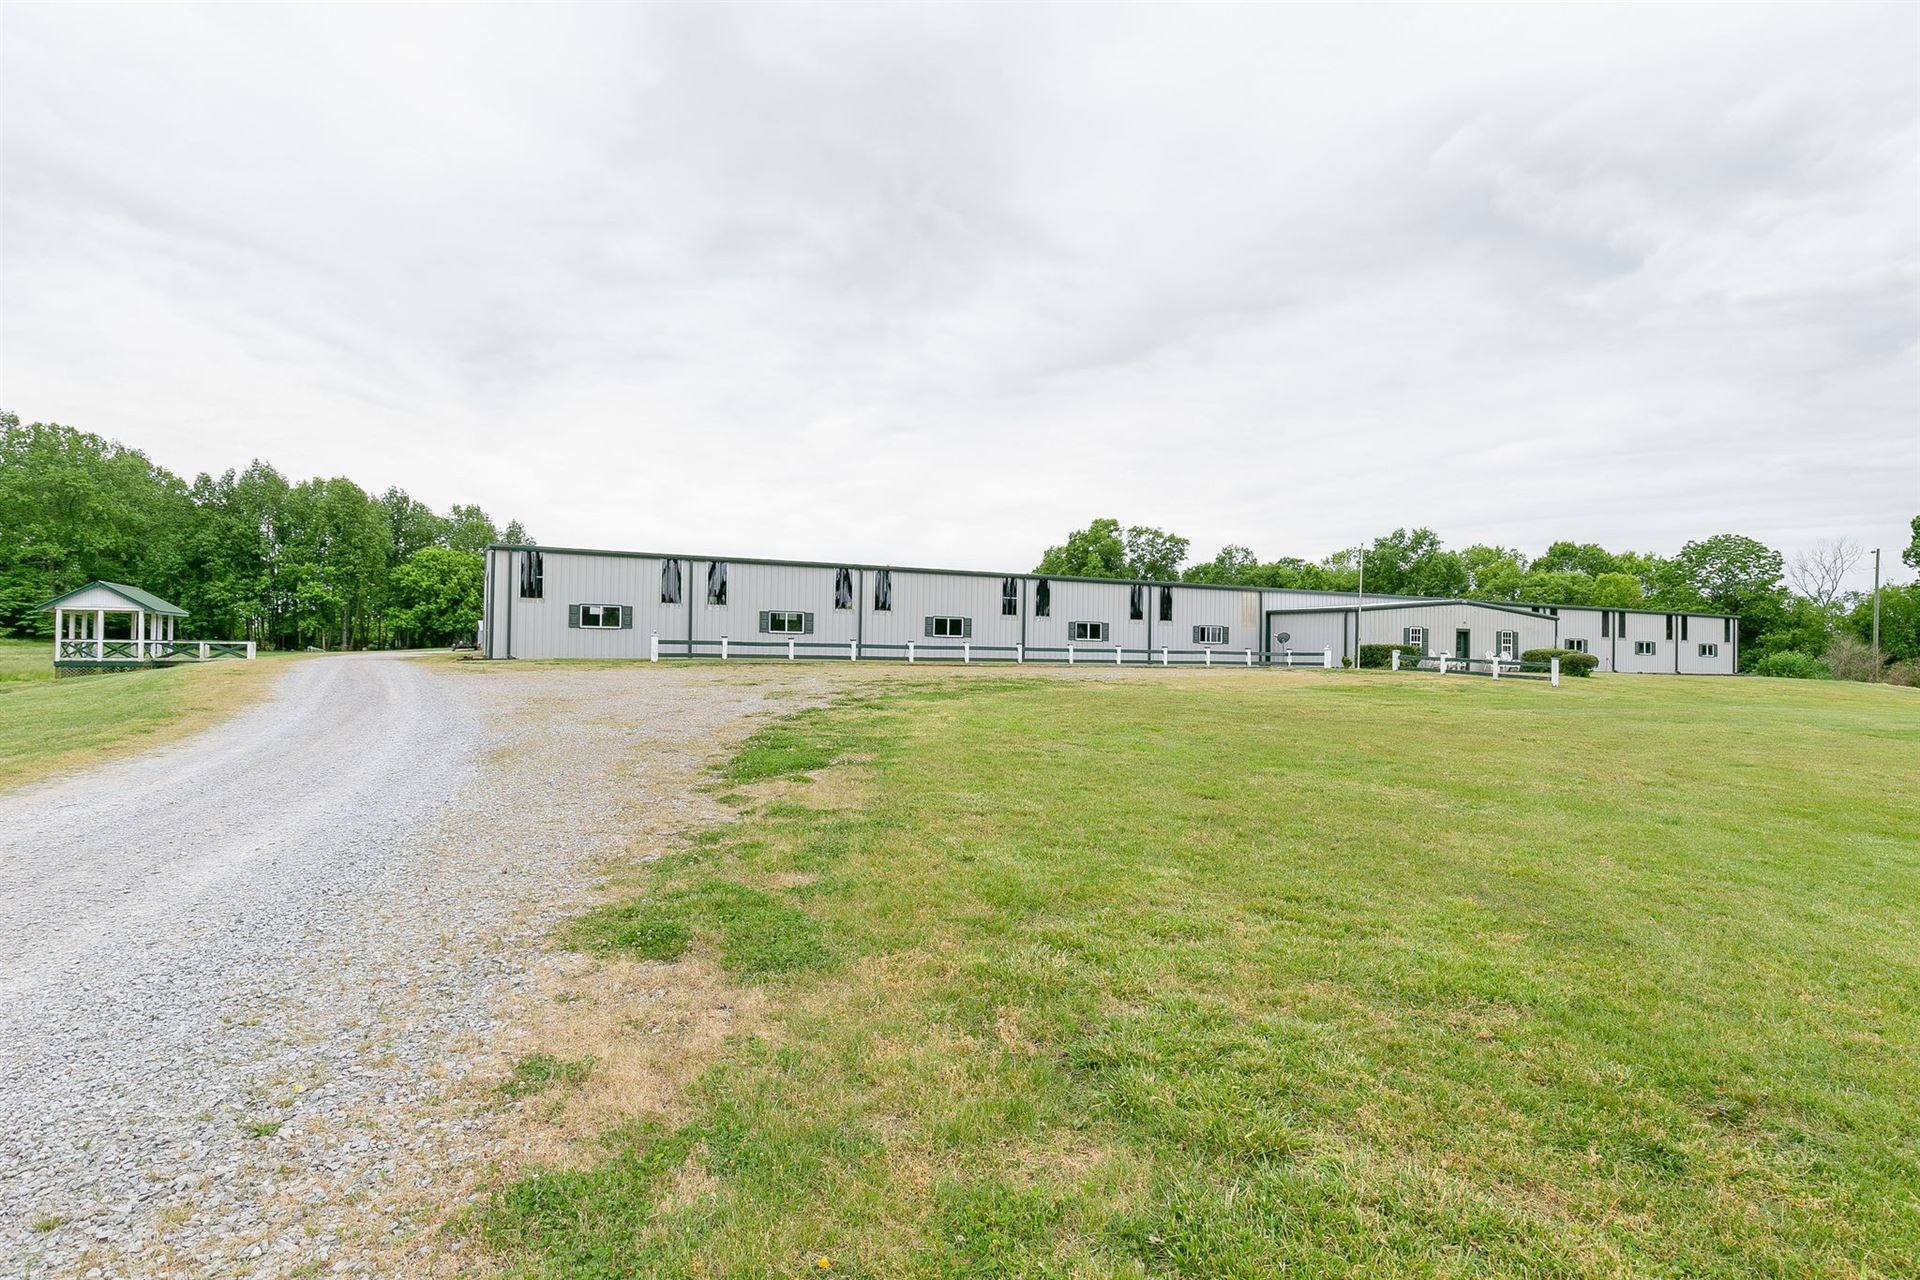 Photo of 3041 Spring Hill-Duplex Rd, Spring Hill, TN 37174 (MLS # 1997967)